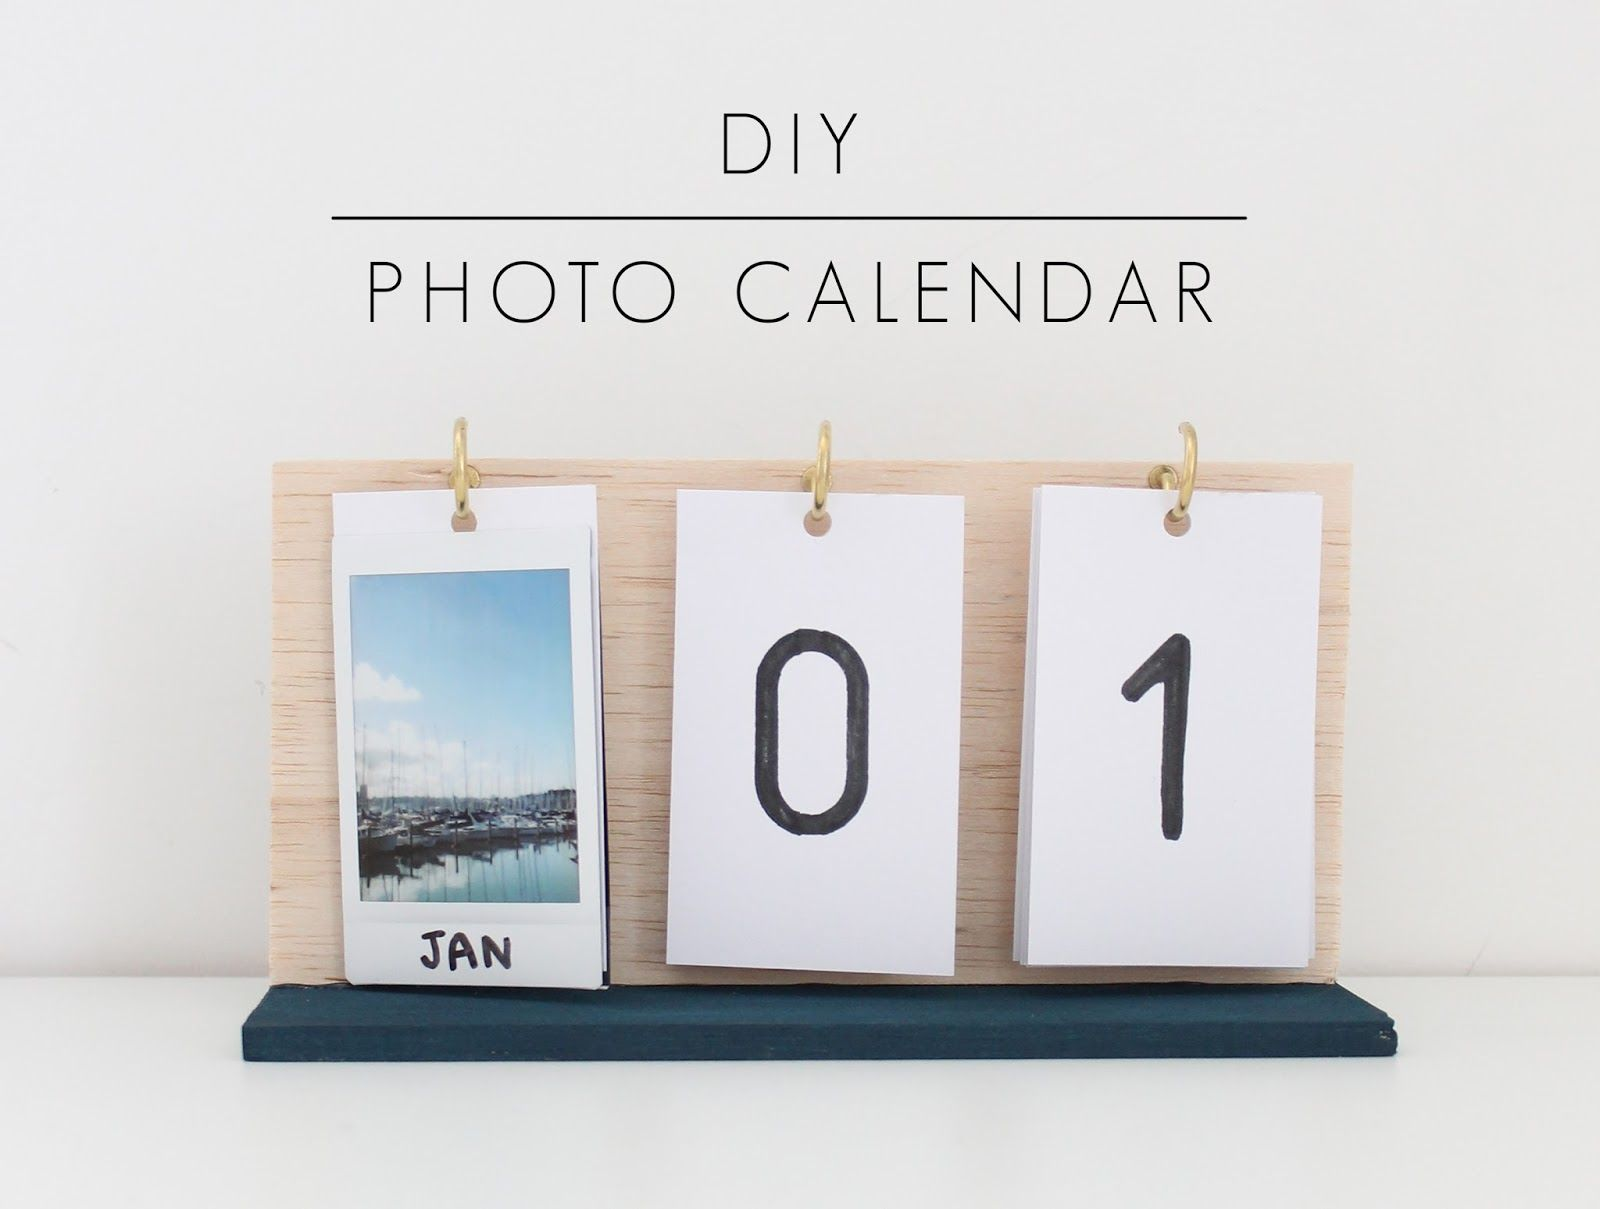 Diy School Calendar : Fun diy gifts school and photo calendar